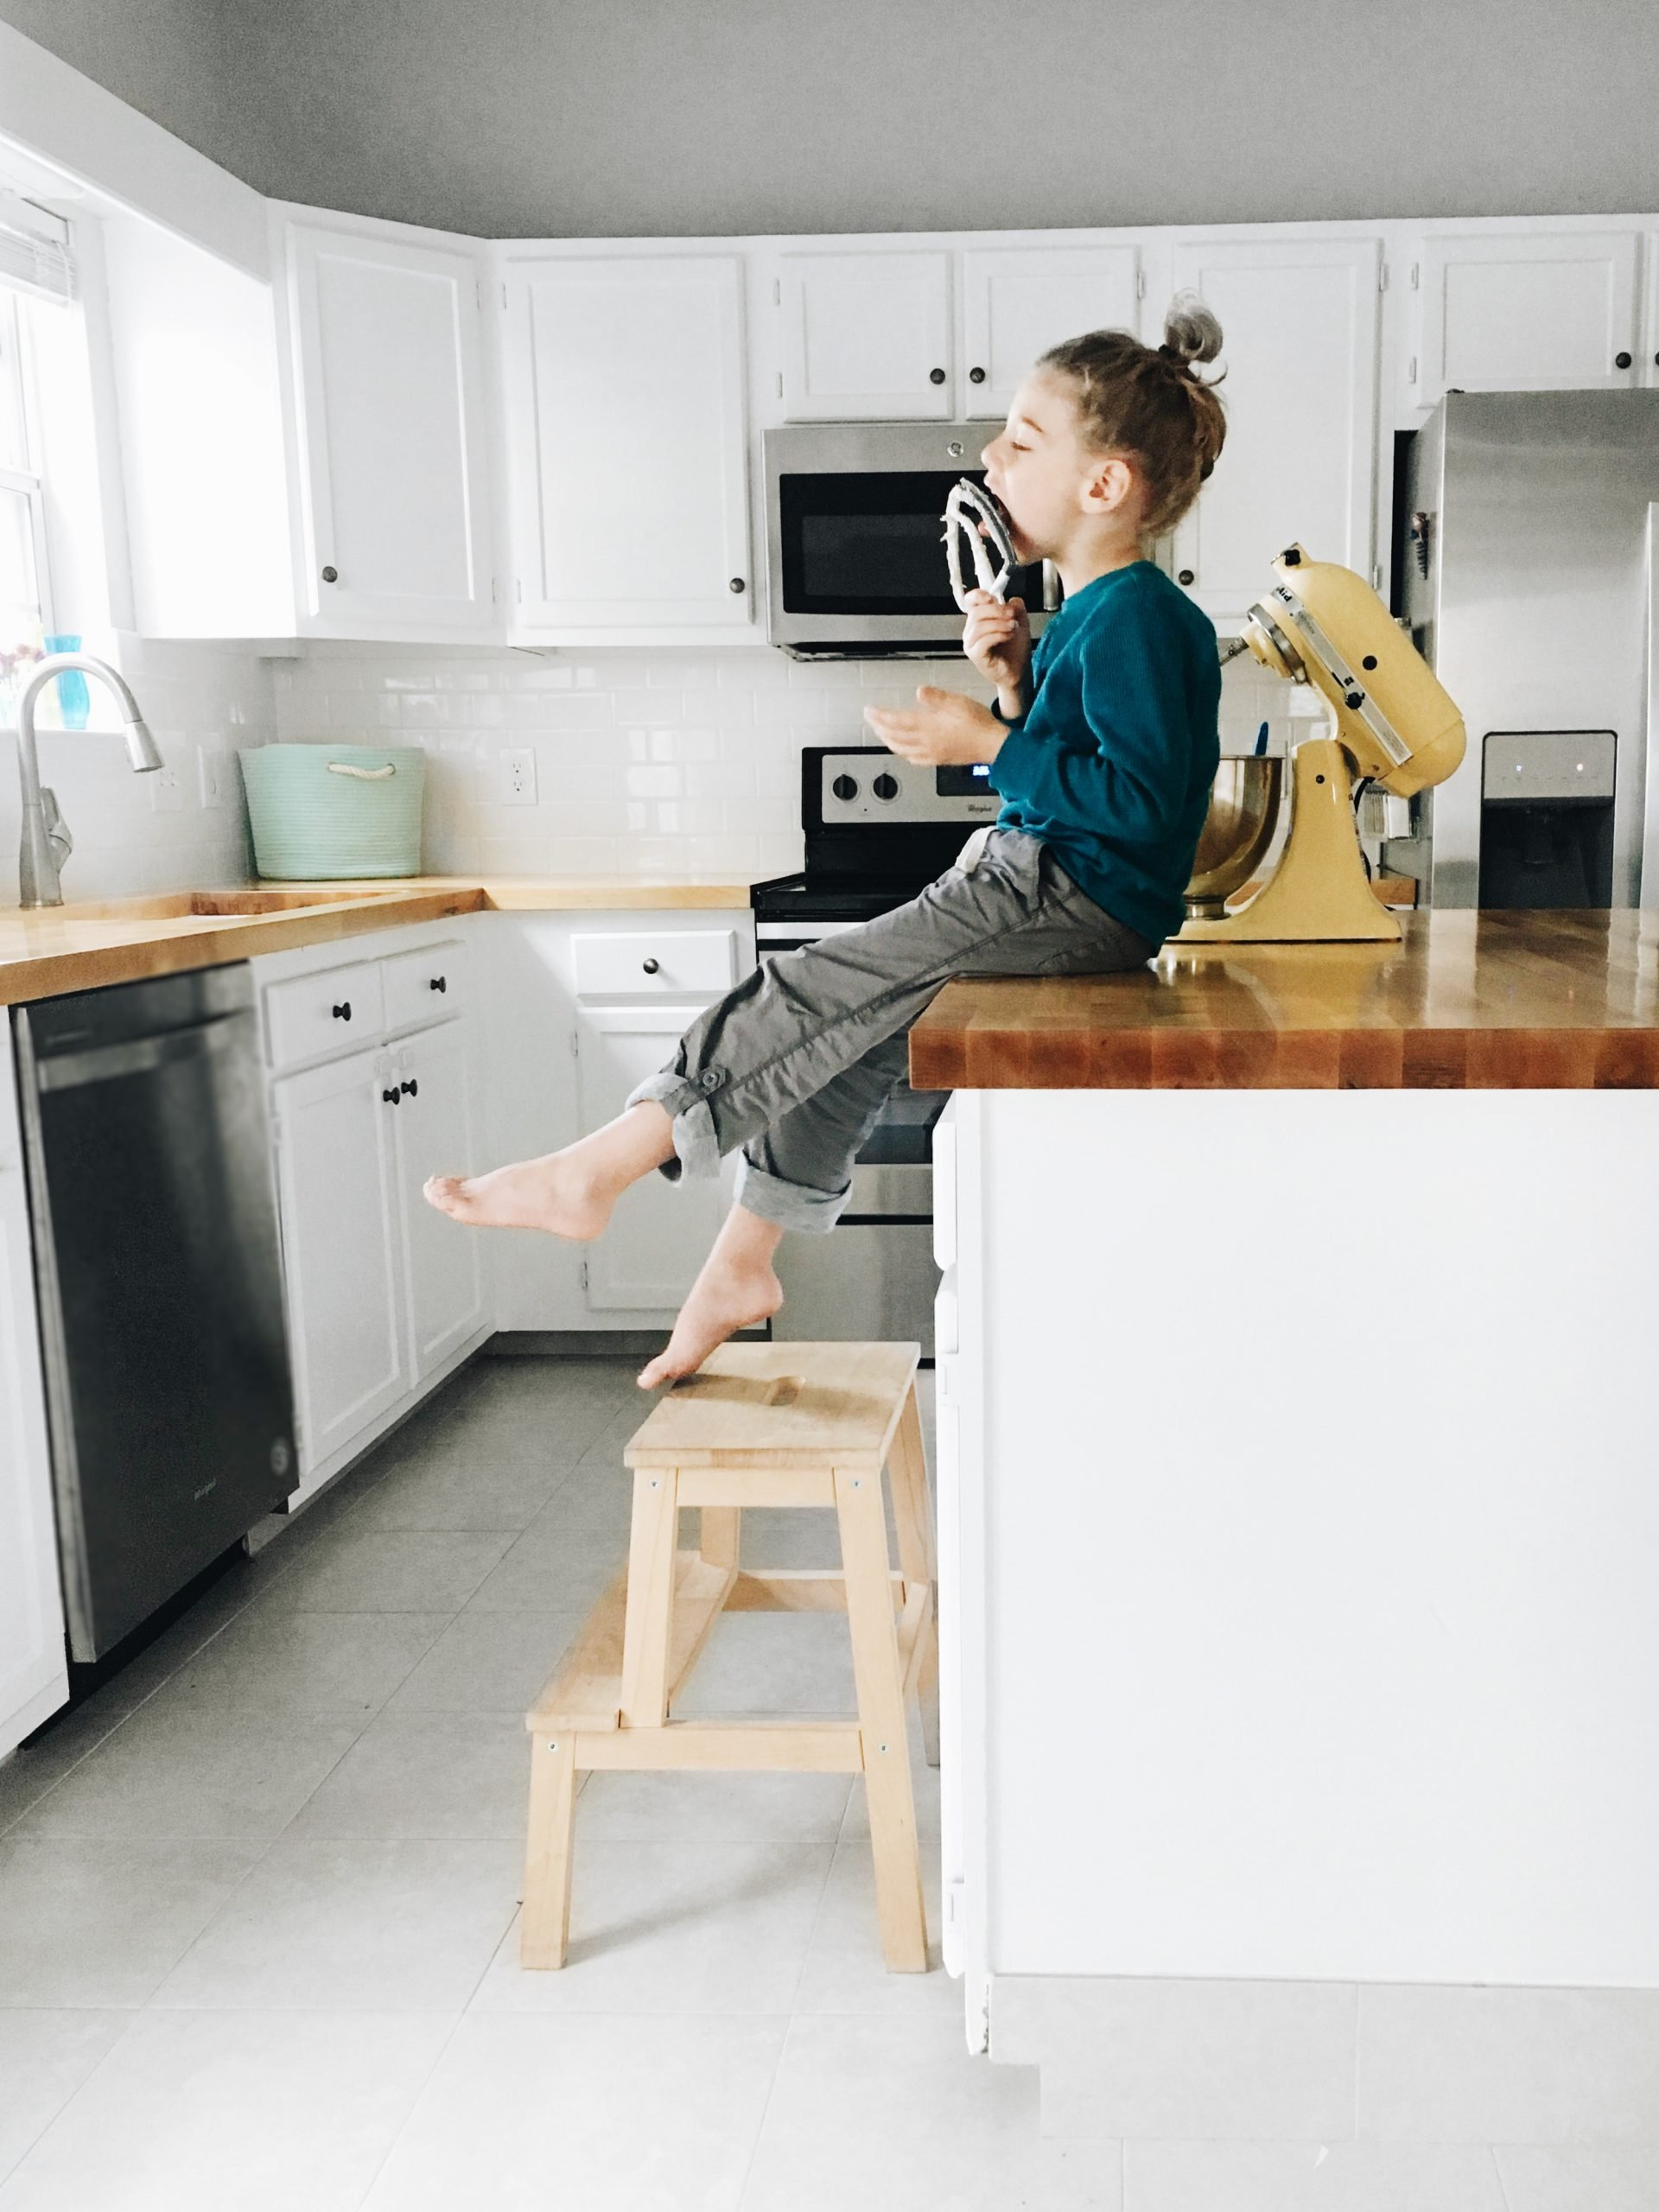 after a diy mini kitchen remodel, a child sits on a butcher block counter and licks a mixer beater.